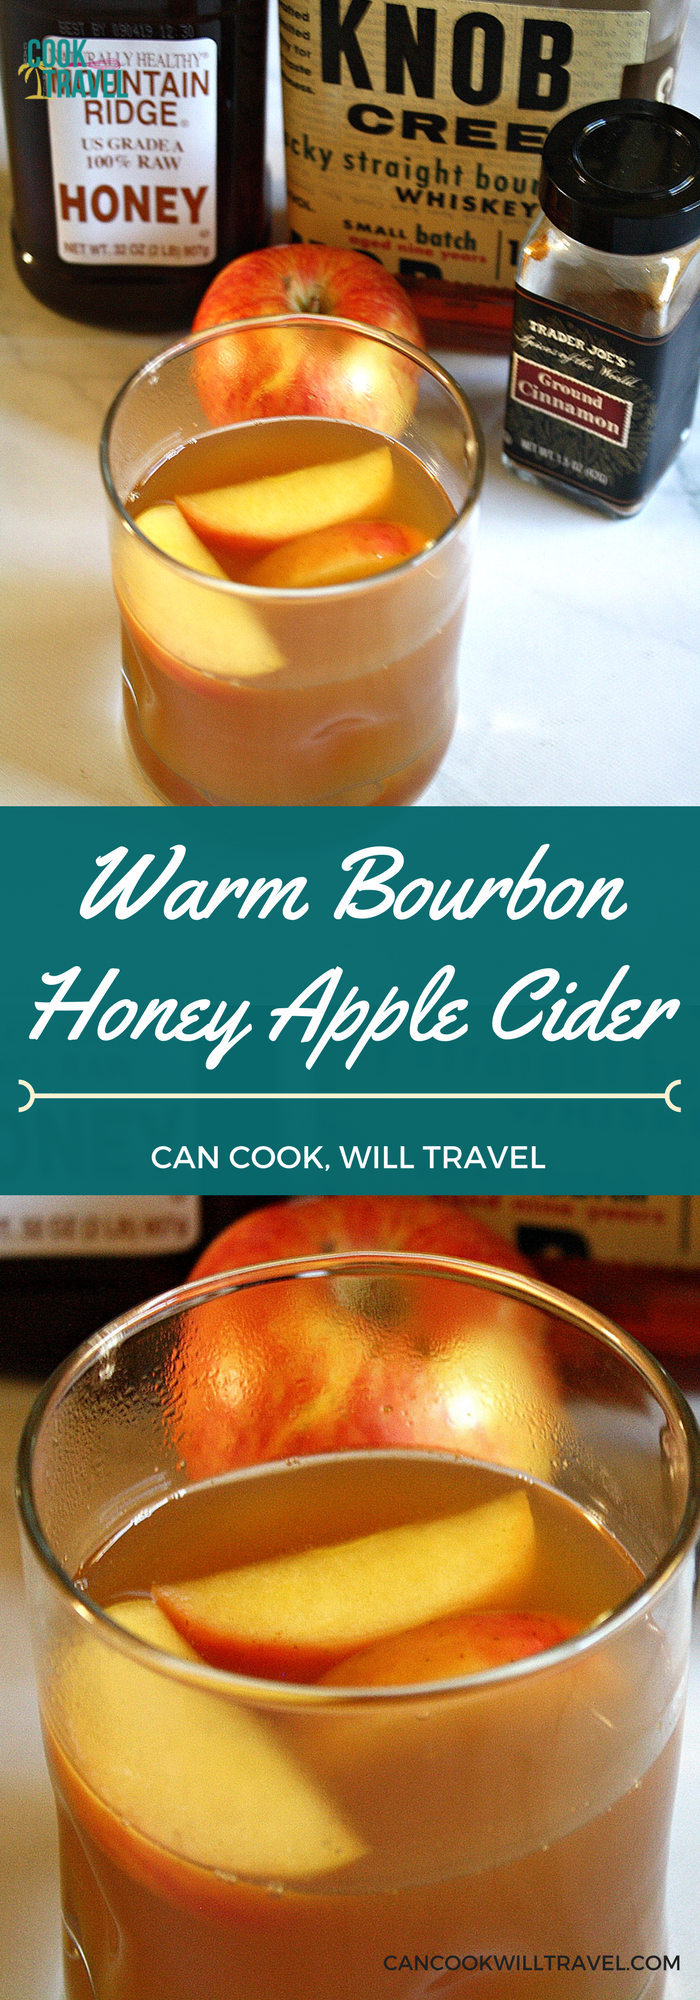 Warm Bourbon Honey Apple Cider_Collage1